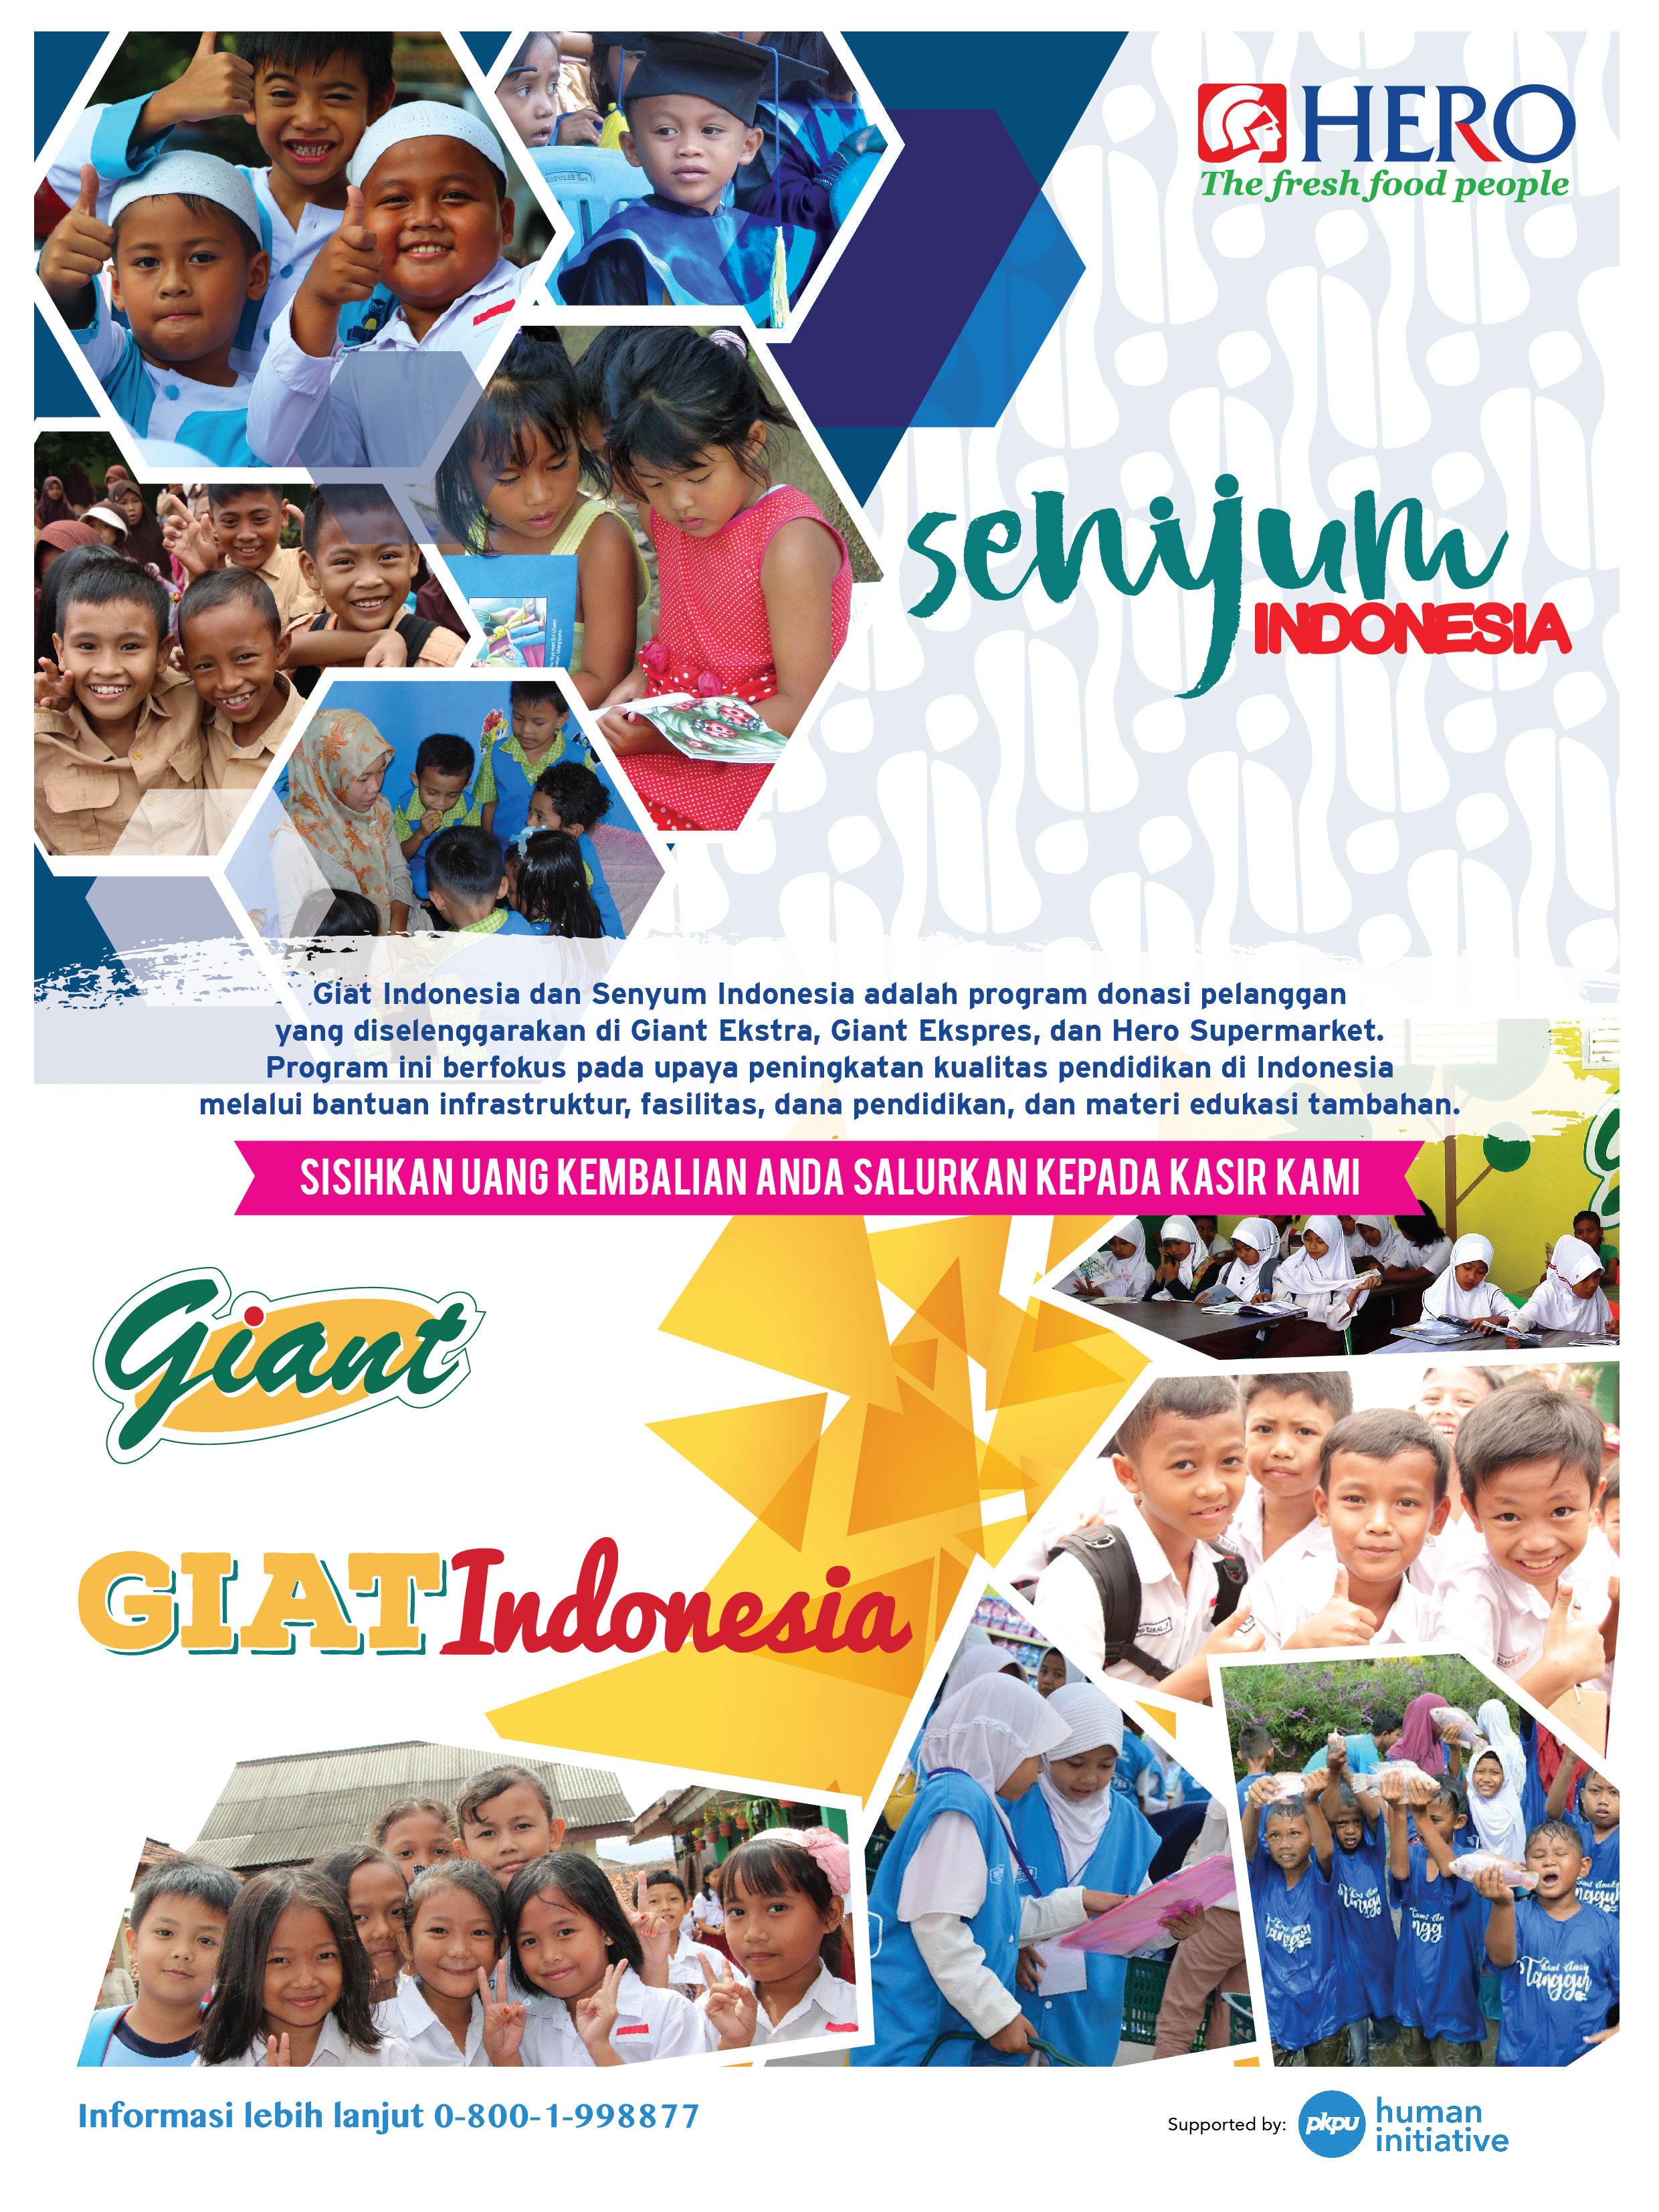 Hero Senyum Giant Giat